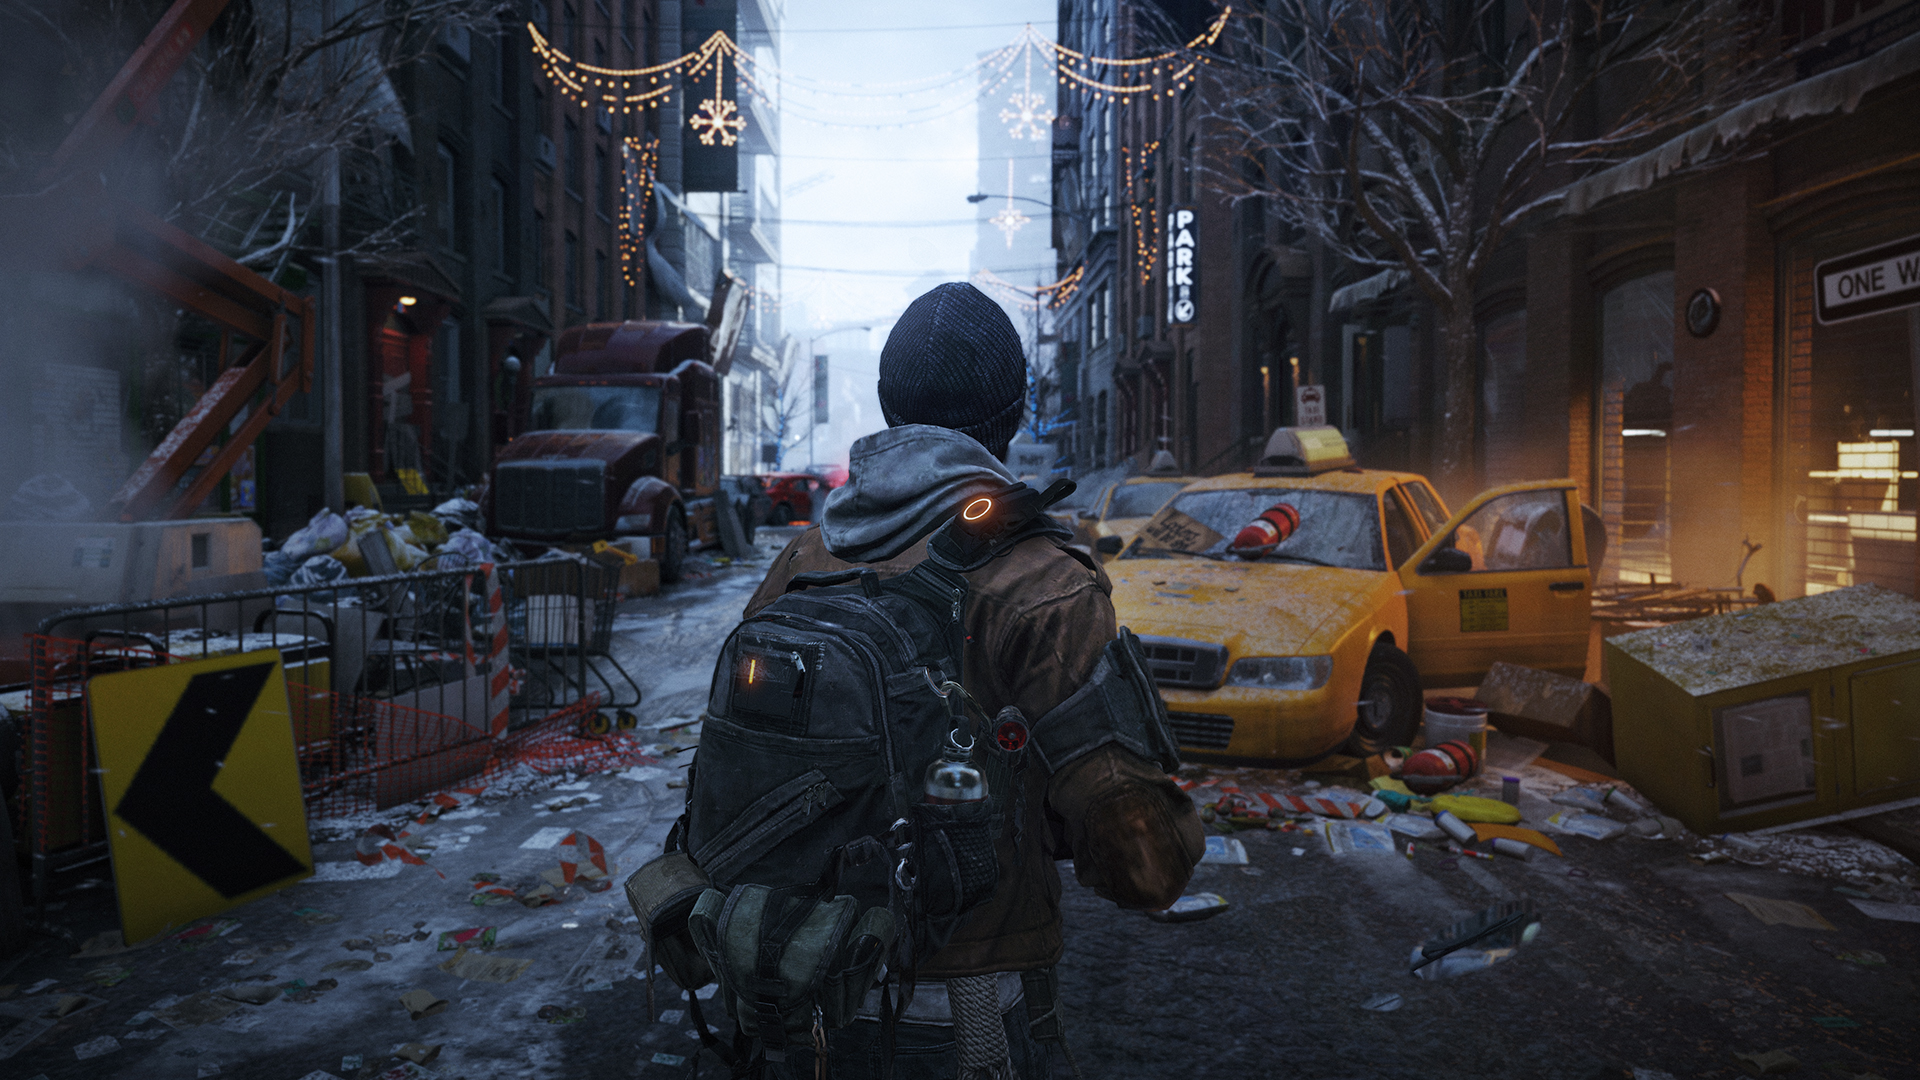 Tom Clancy's The Division – are consoles learning some of the PC's bad tricks?